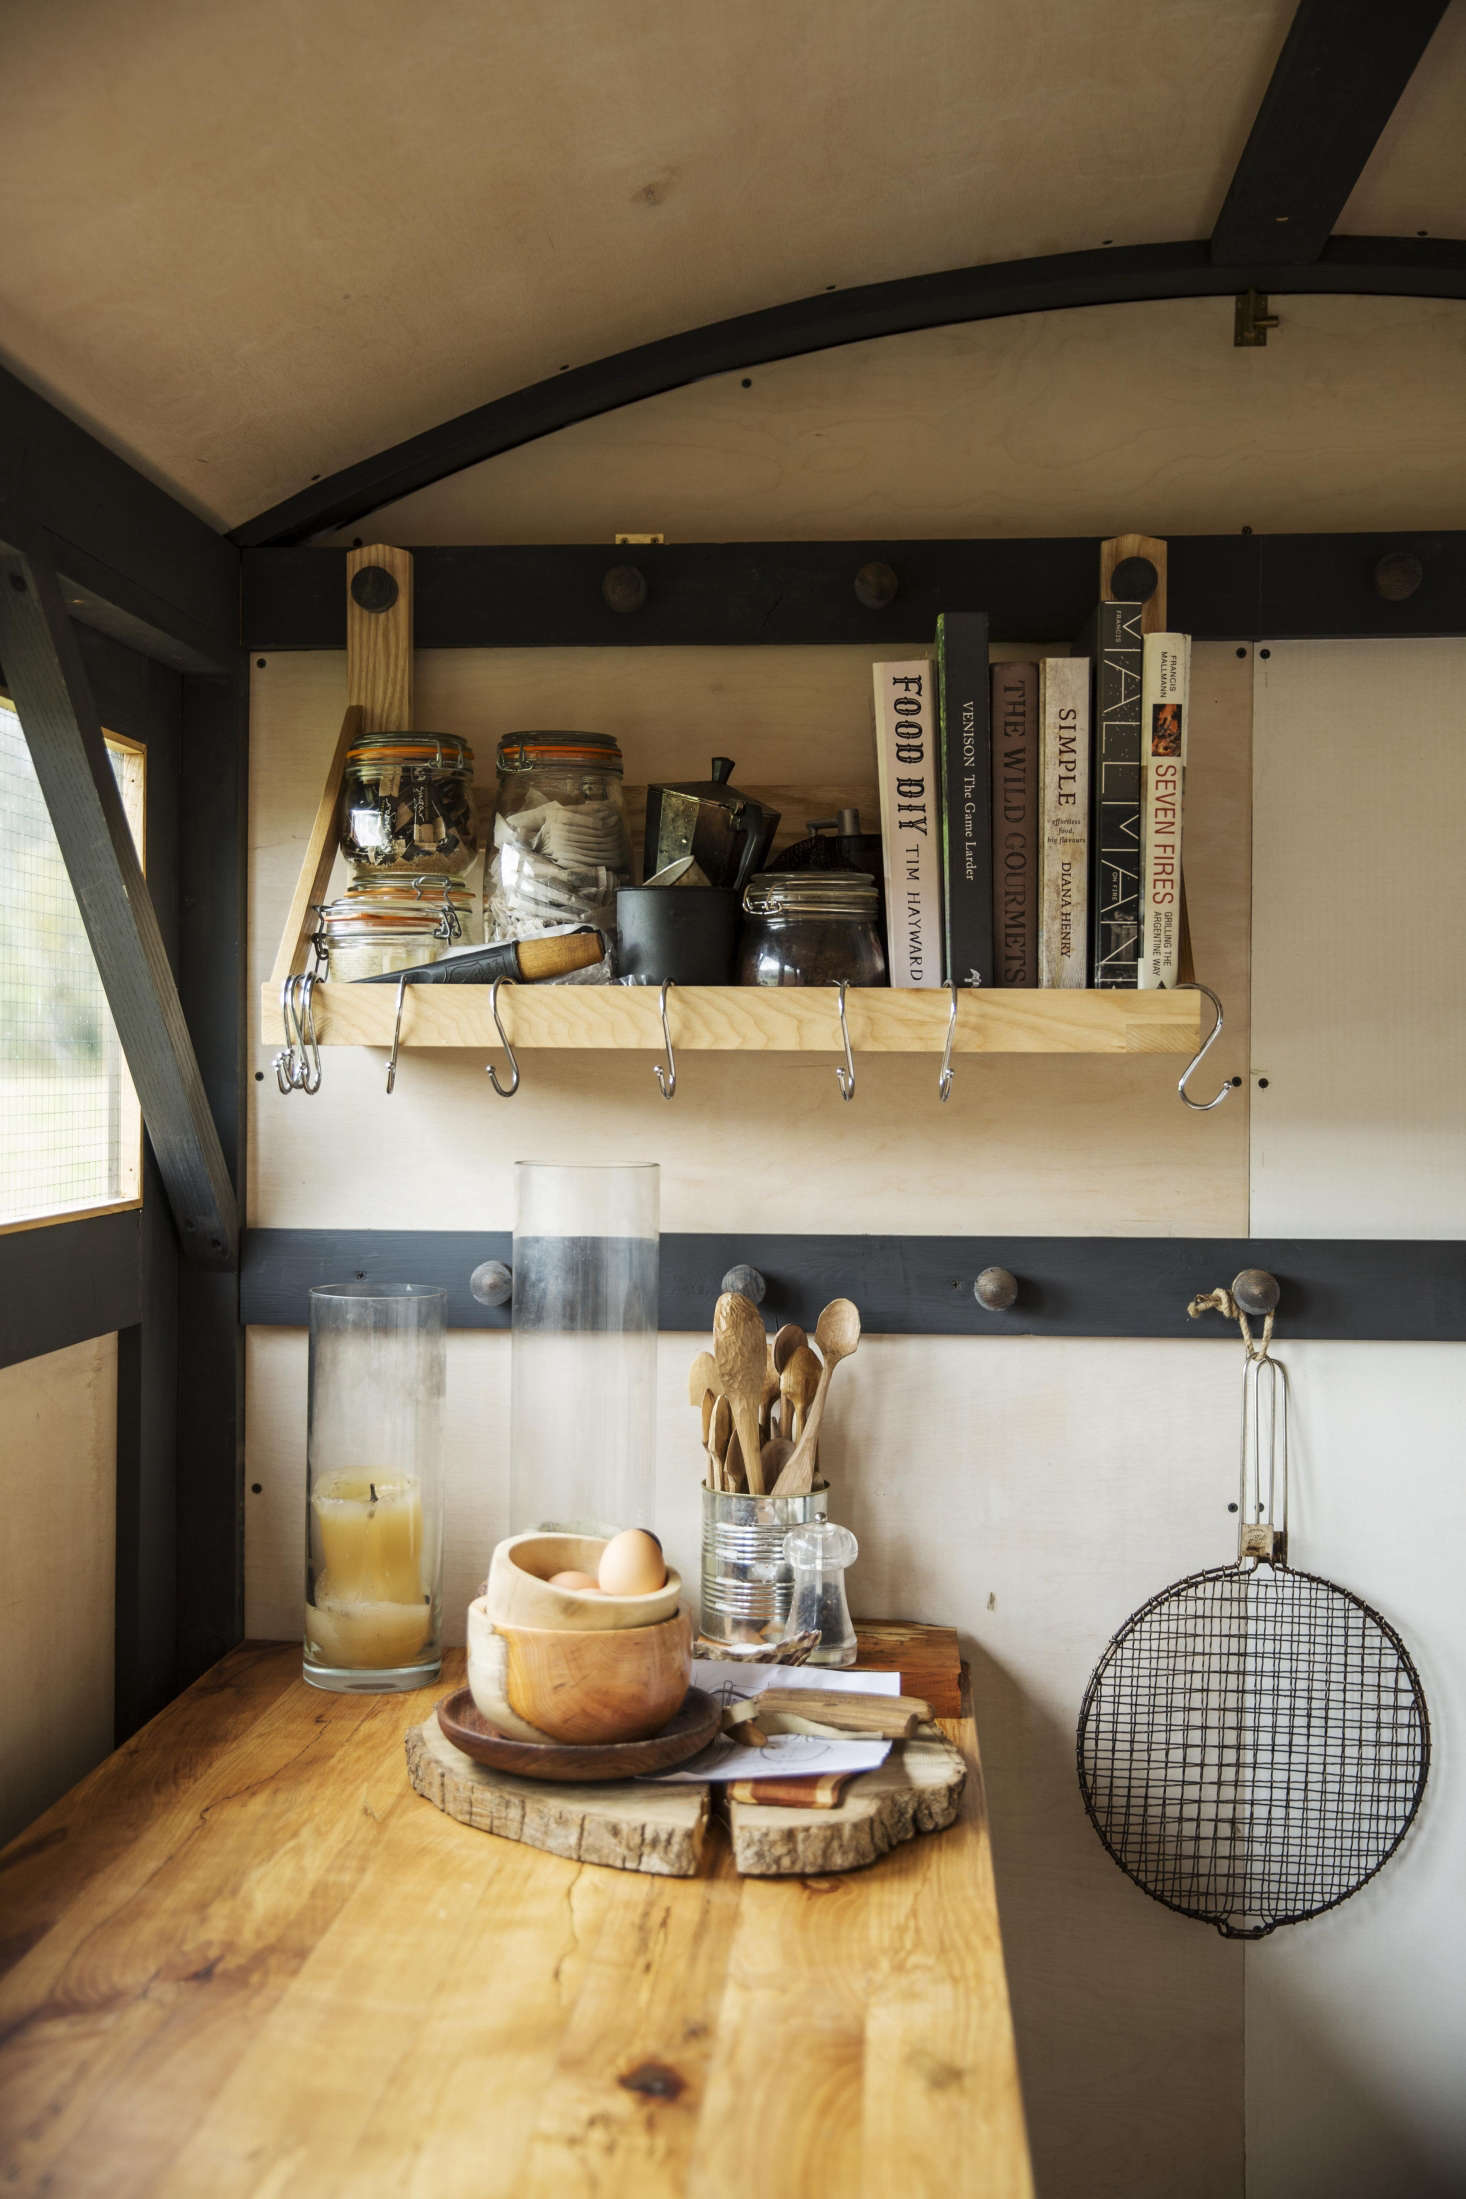 Butcher block counters are a durable option for a mobile, outdoor kitchen; see Stockpot and Two Smoking Barrels: A Rustic Kitchen in a Shepherd's Hut in England. Photograph by Emma Lewis.